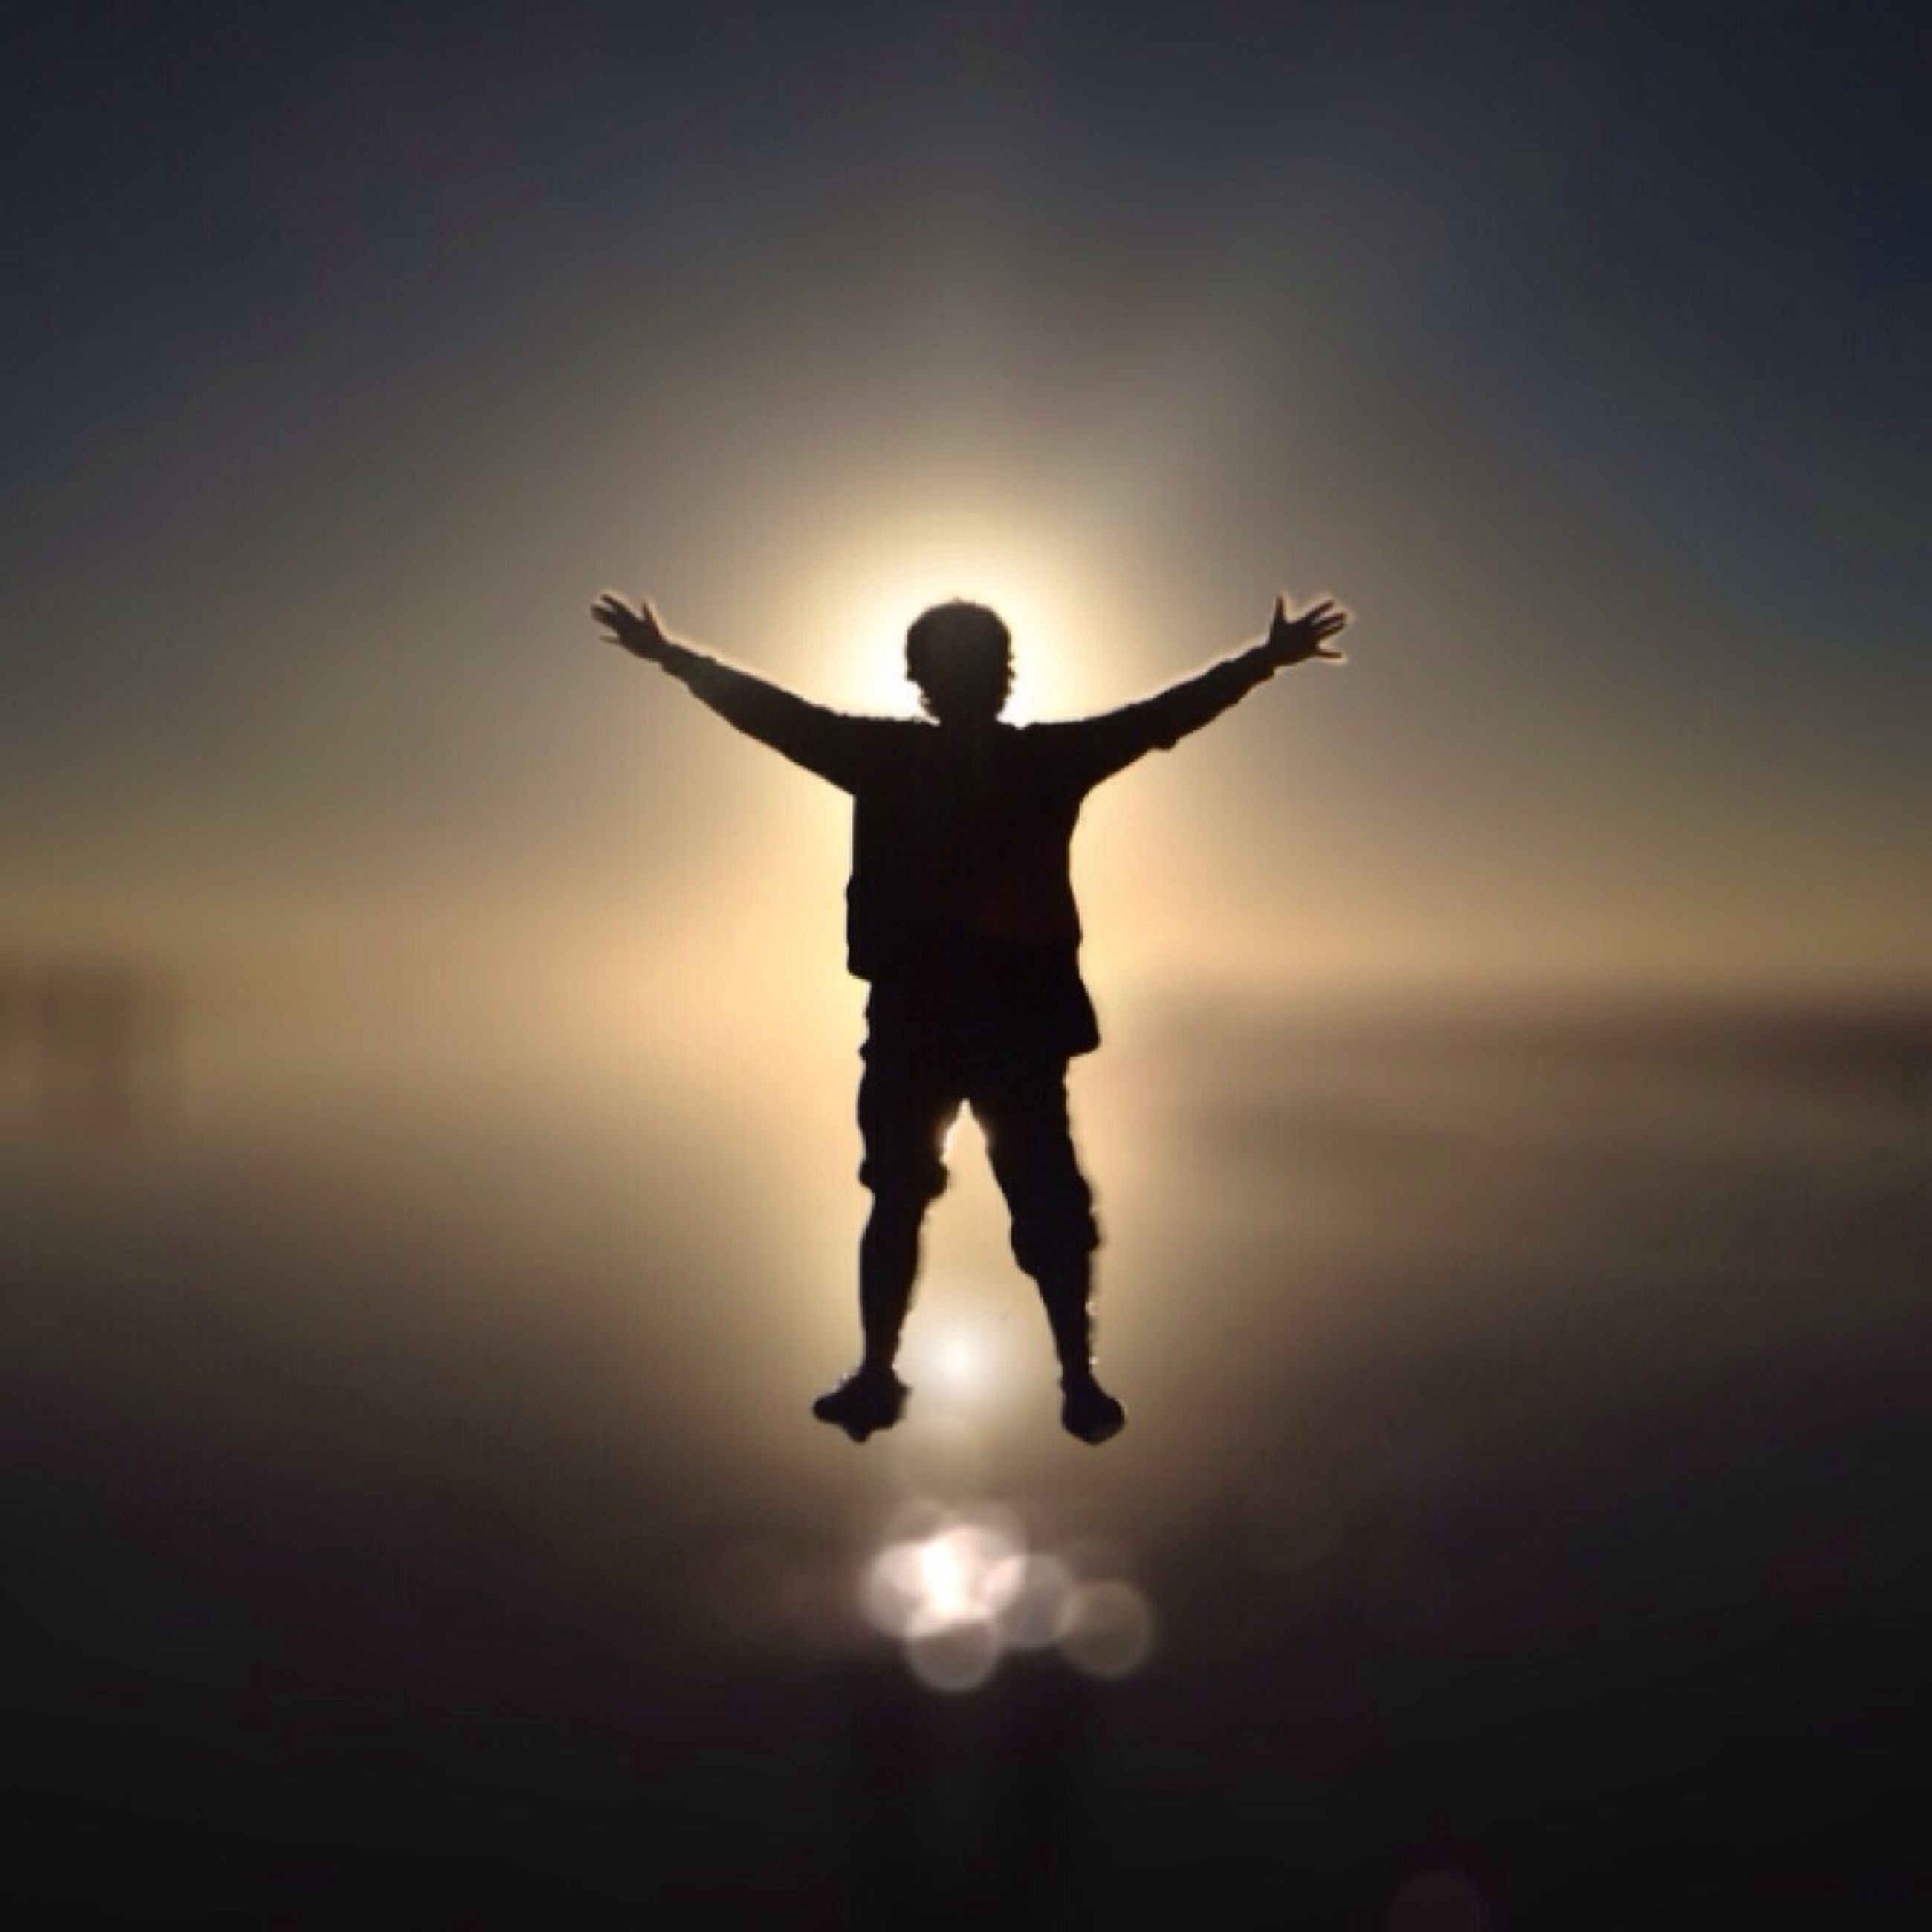 full length, sunset, lifestyles, standing, leisure activity, silhouette, sky, arms outstretched, childhood, water, sun, mid-air, arms raised, dusk, orange color, reflection, enjoyment, illuminated